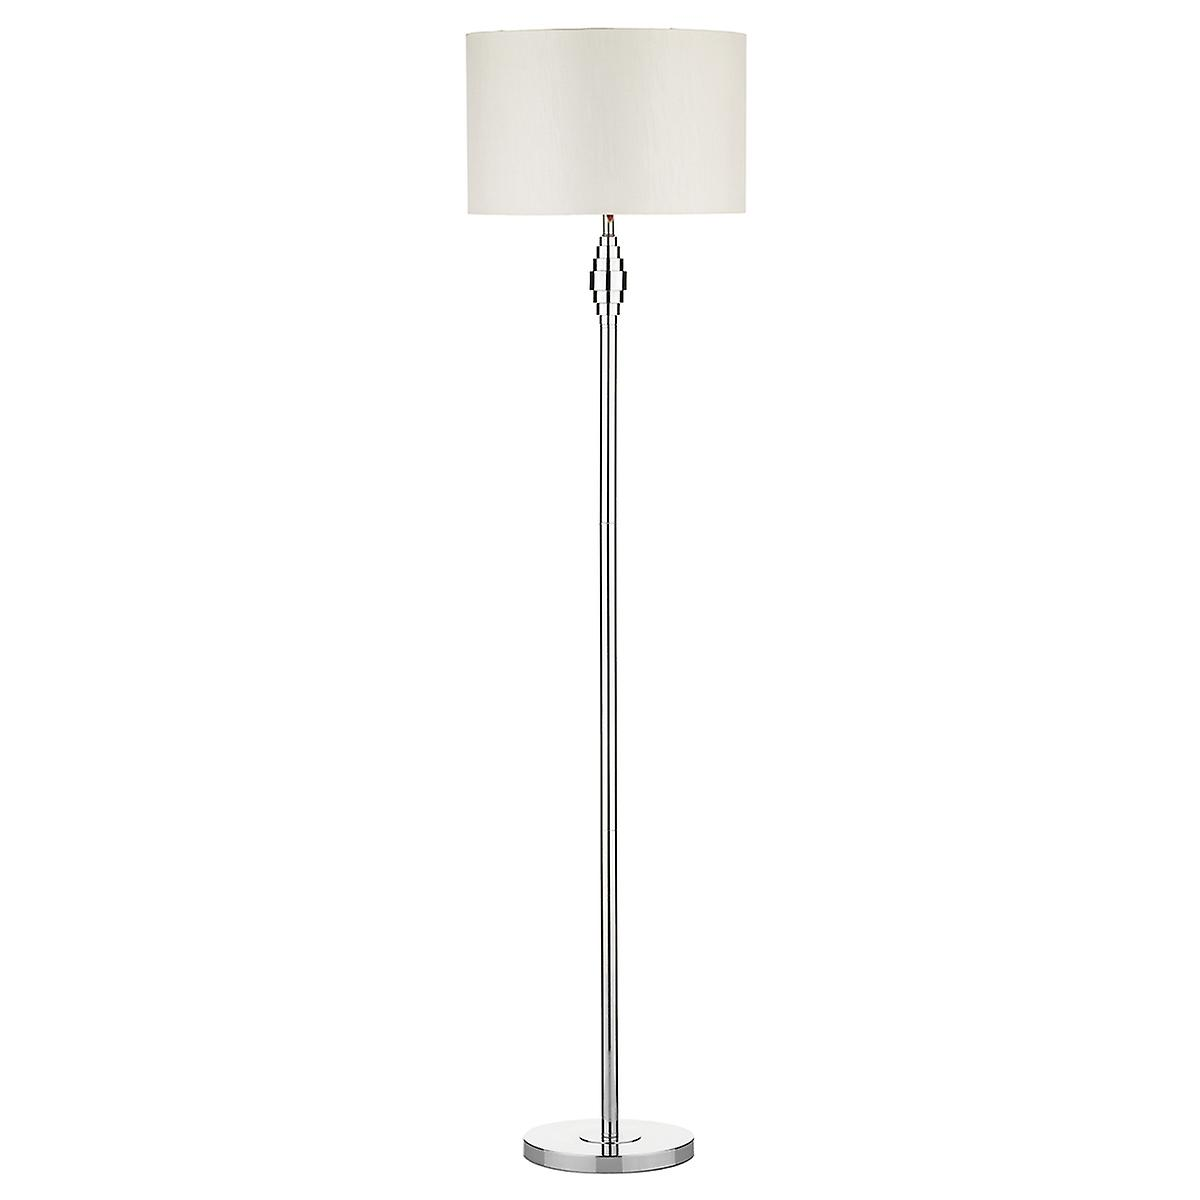 Dar ADO4950 Adonis Modern Floor Lamp With White Faux Silk Drum Shade